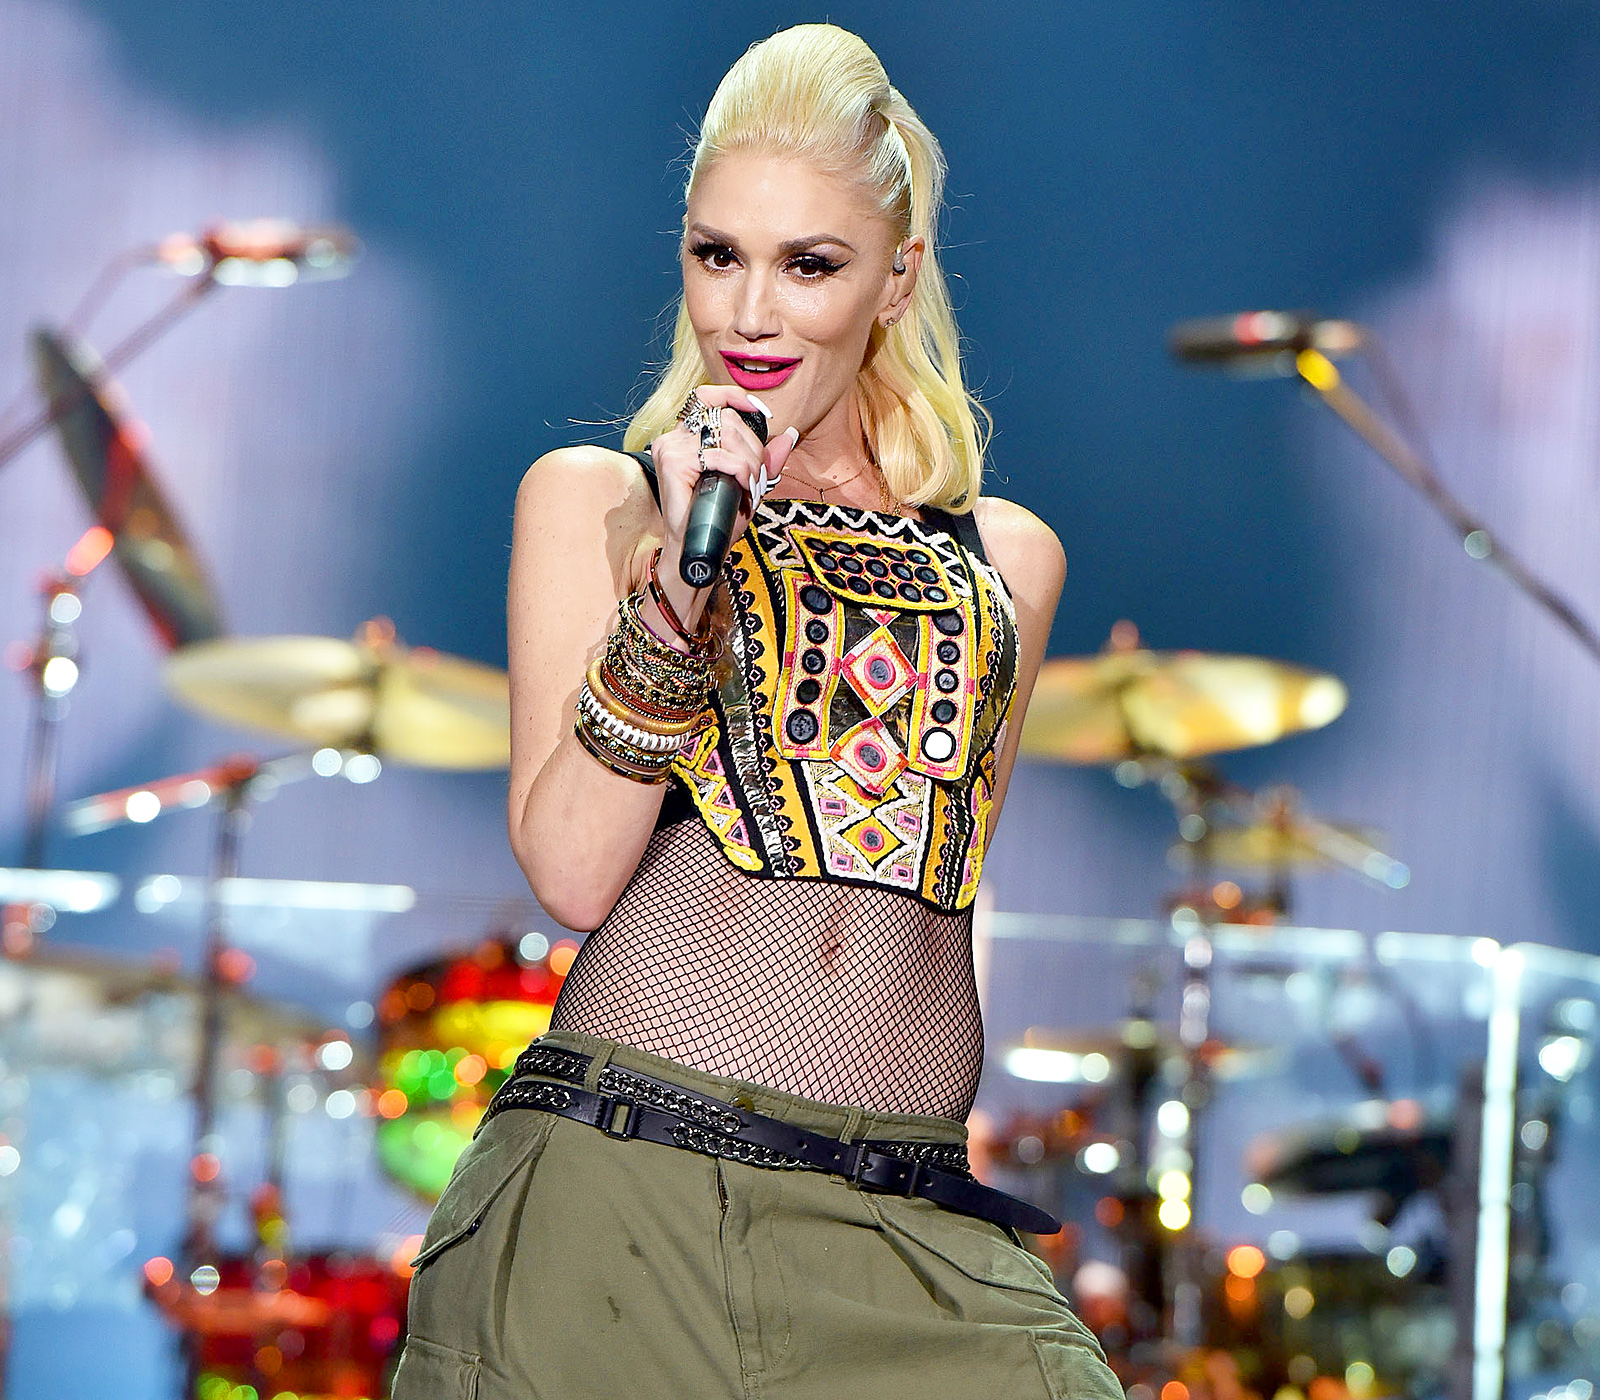 Is marriage in Gwen Stefani and Blake Shelton's future?